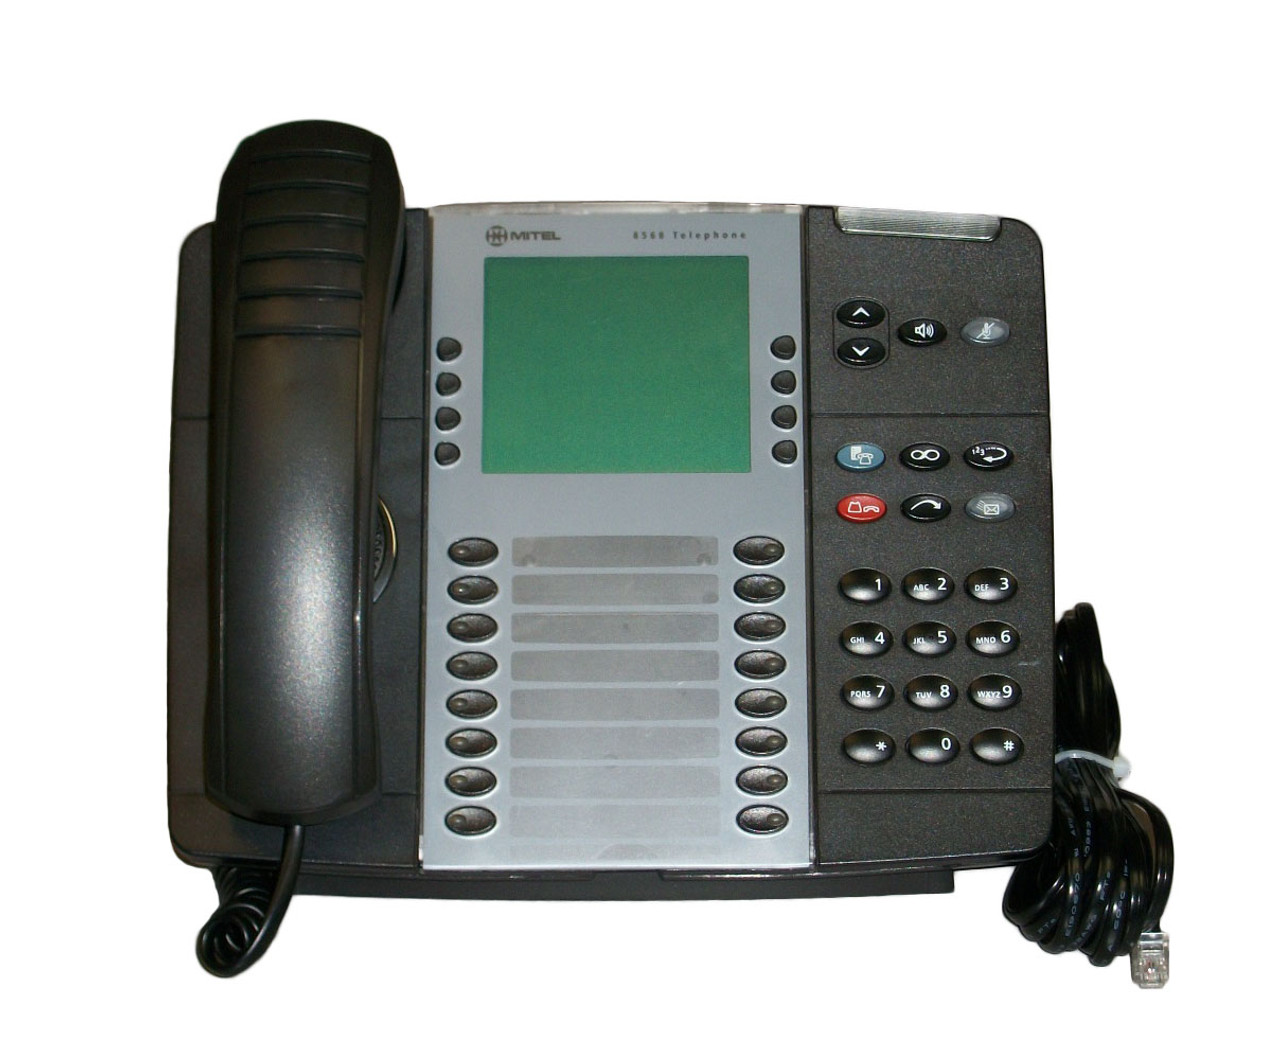 Mitel 8568 Digital LCD Phone - 50006123